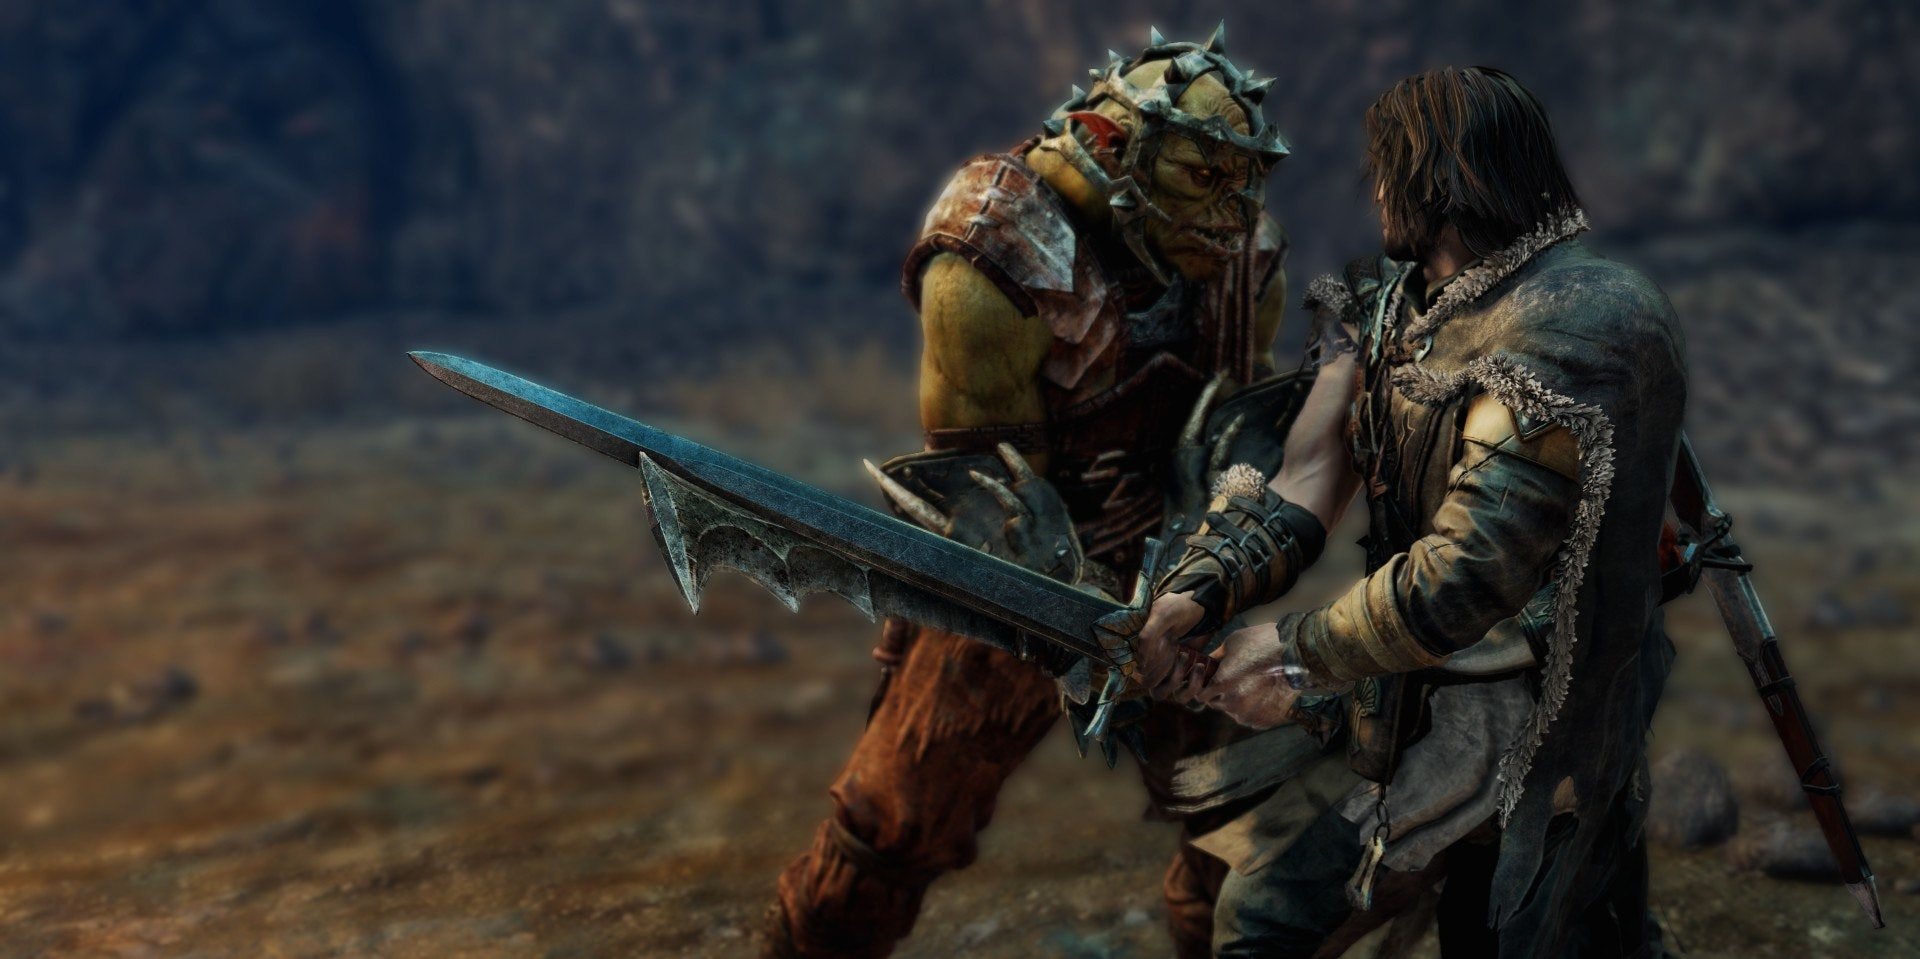 'Middle-earth: Shadow of War' Needs to Fix the Nemesis System